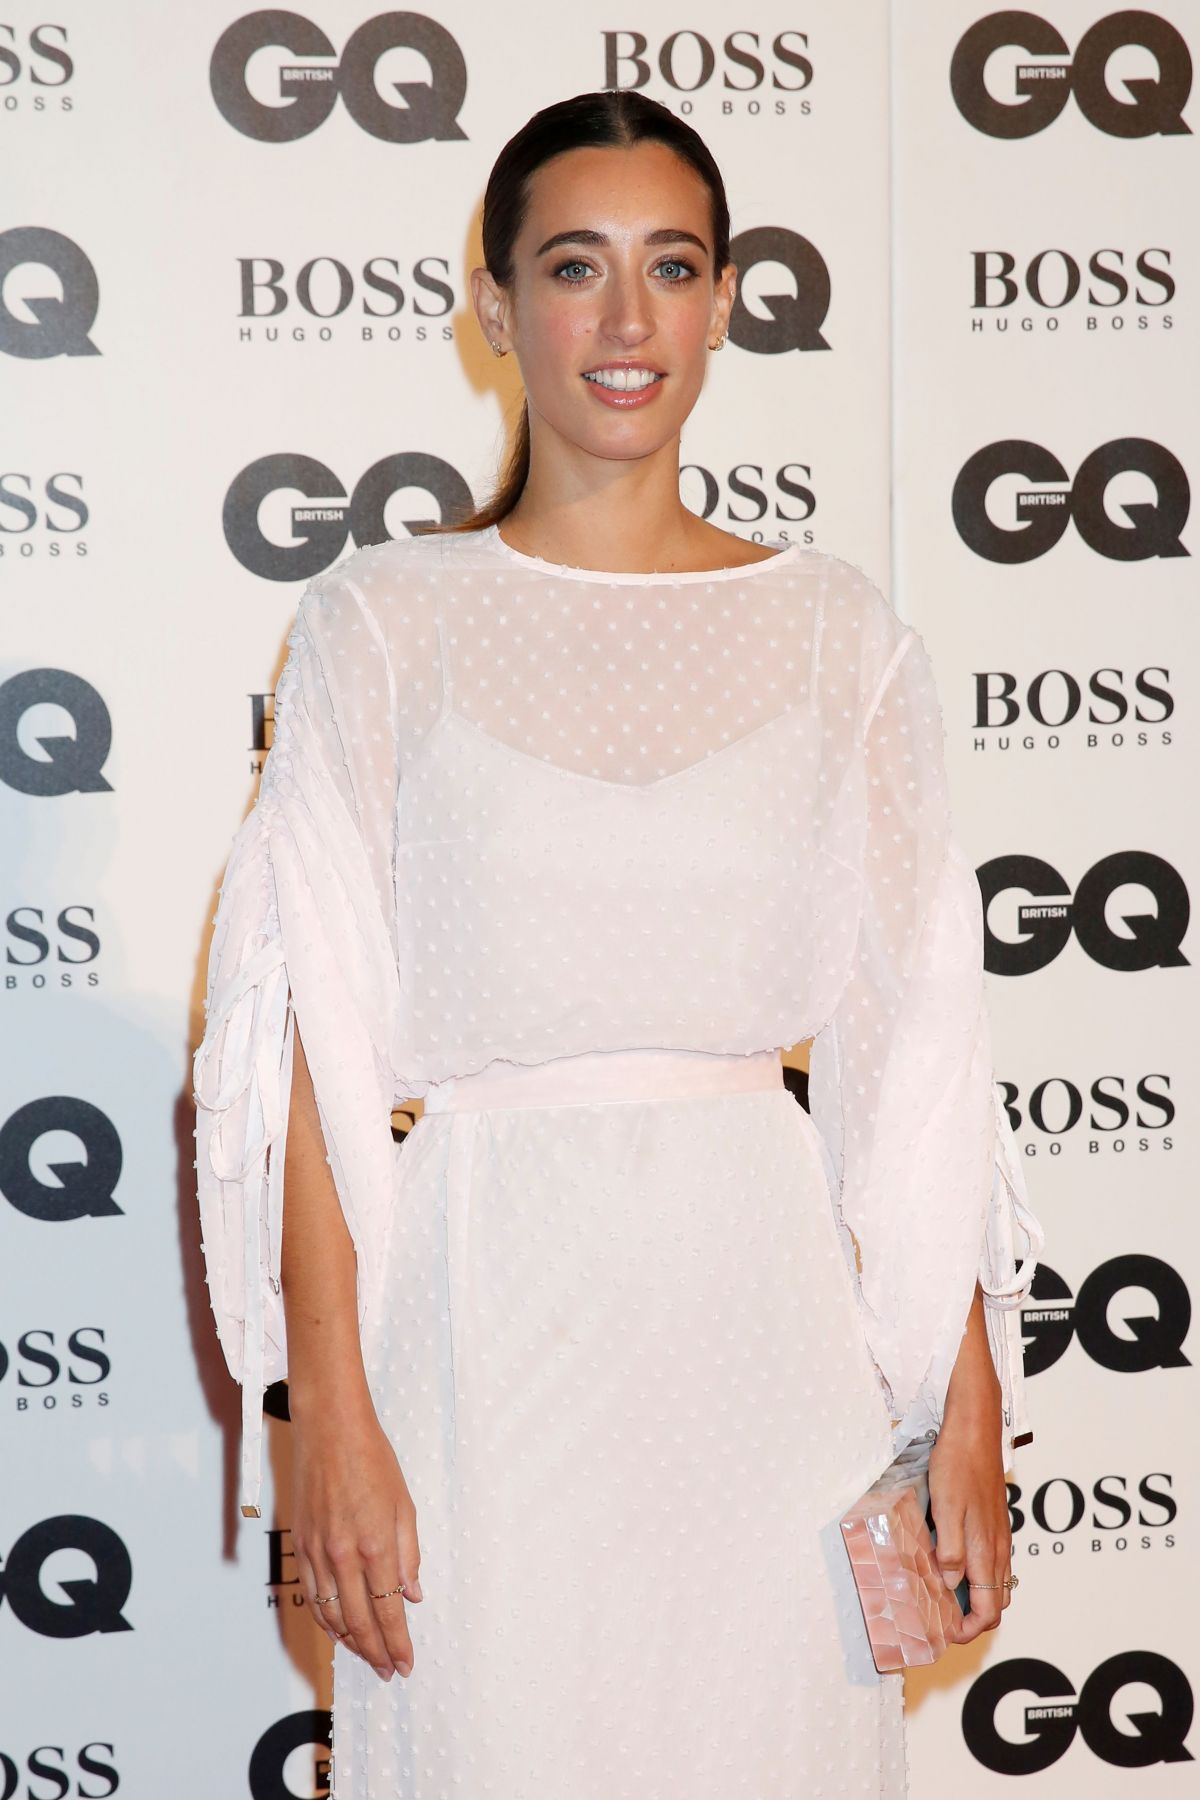 LAURA JACKSON at GQ Men of the Year Awards 2017 in London 09/05/2017